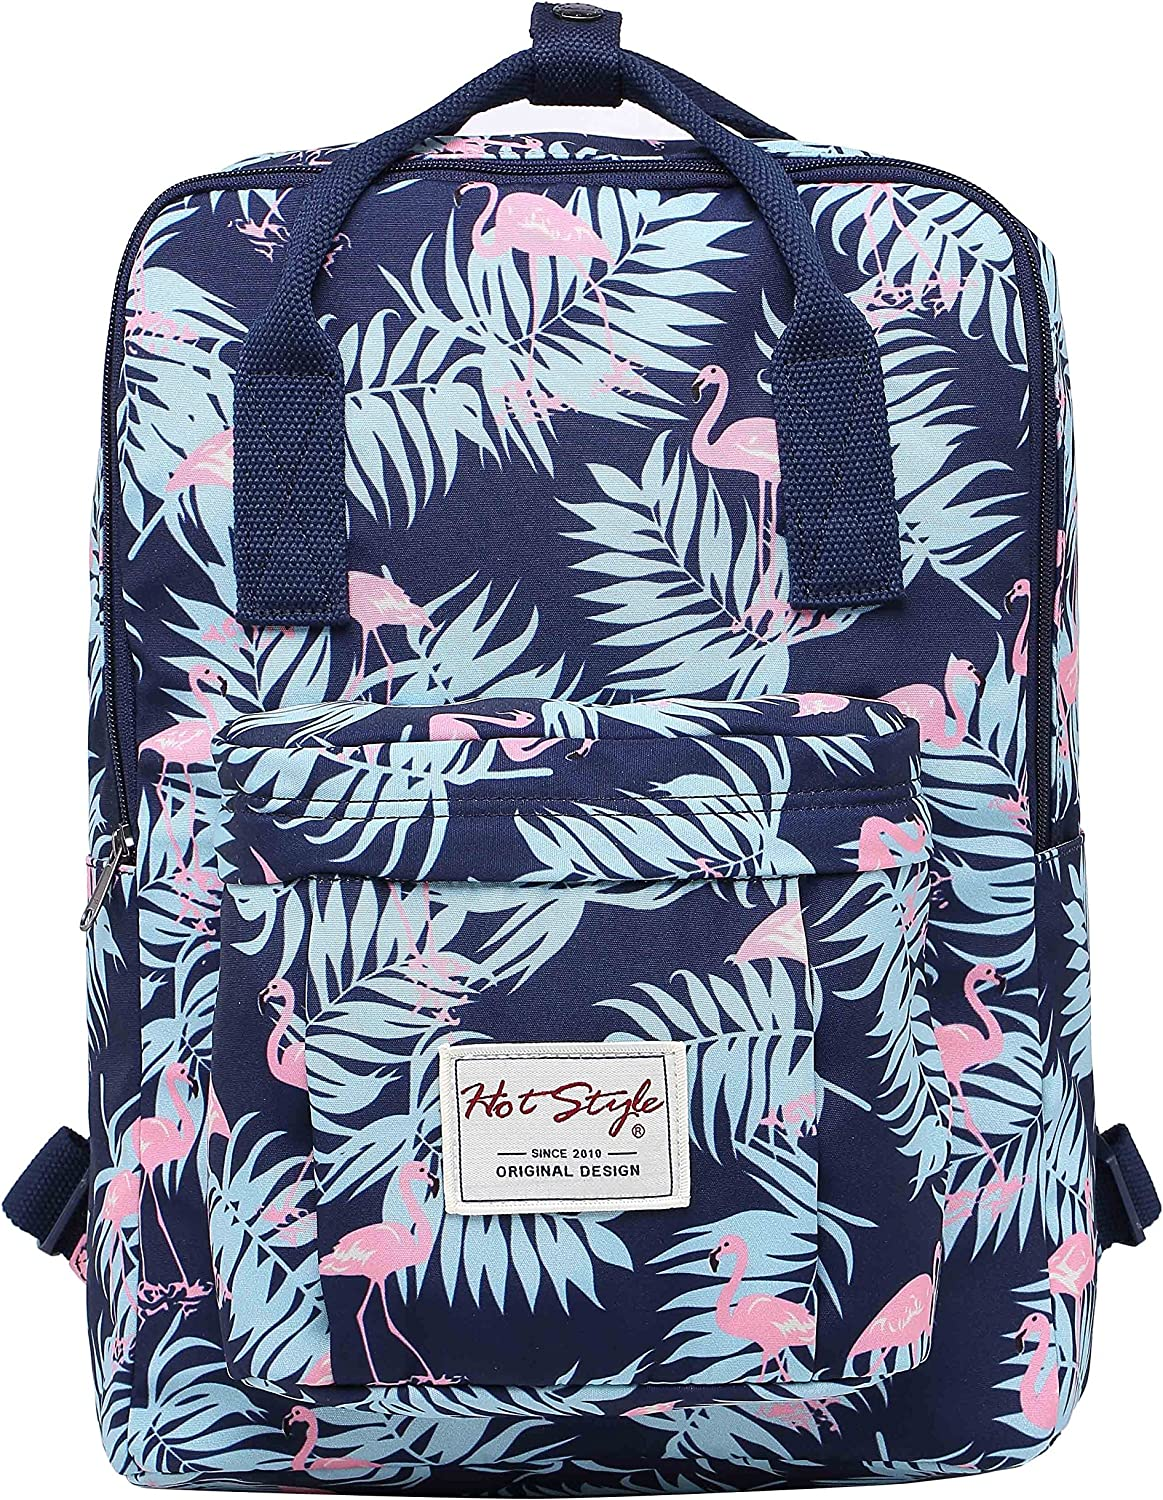 Bestie 14  College Bookbag Backpack Cute for Women, Flamingos Navy